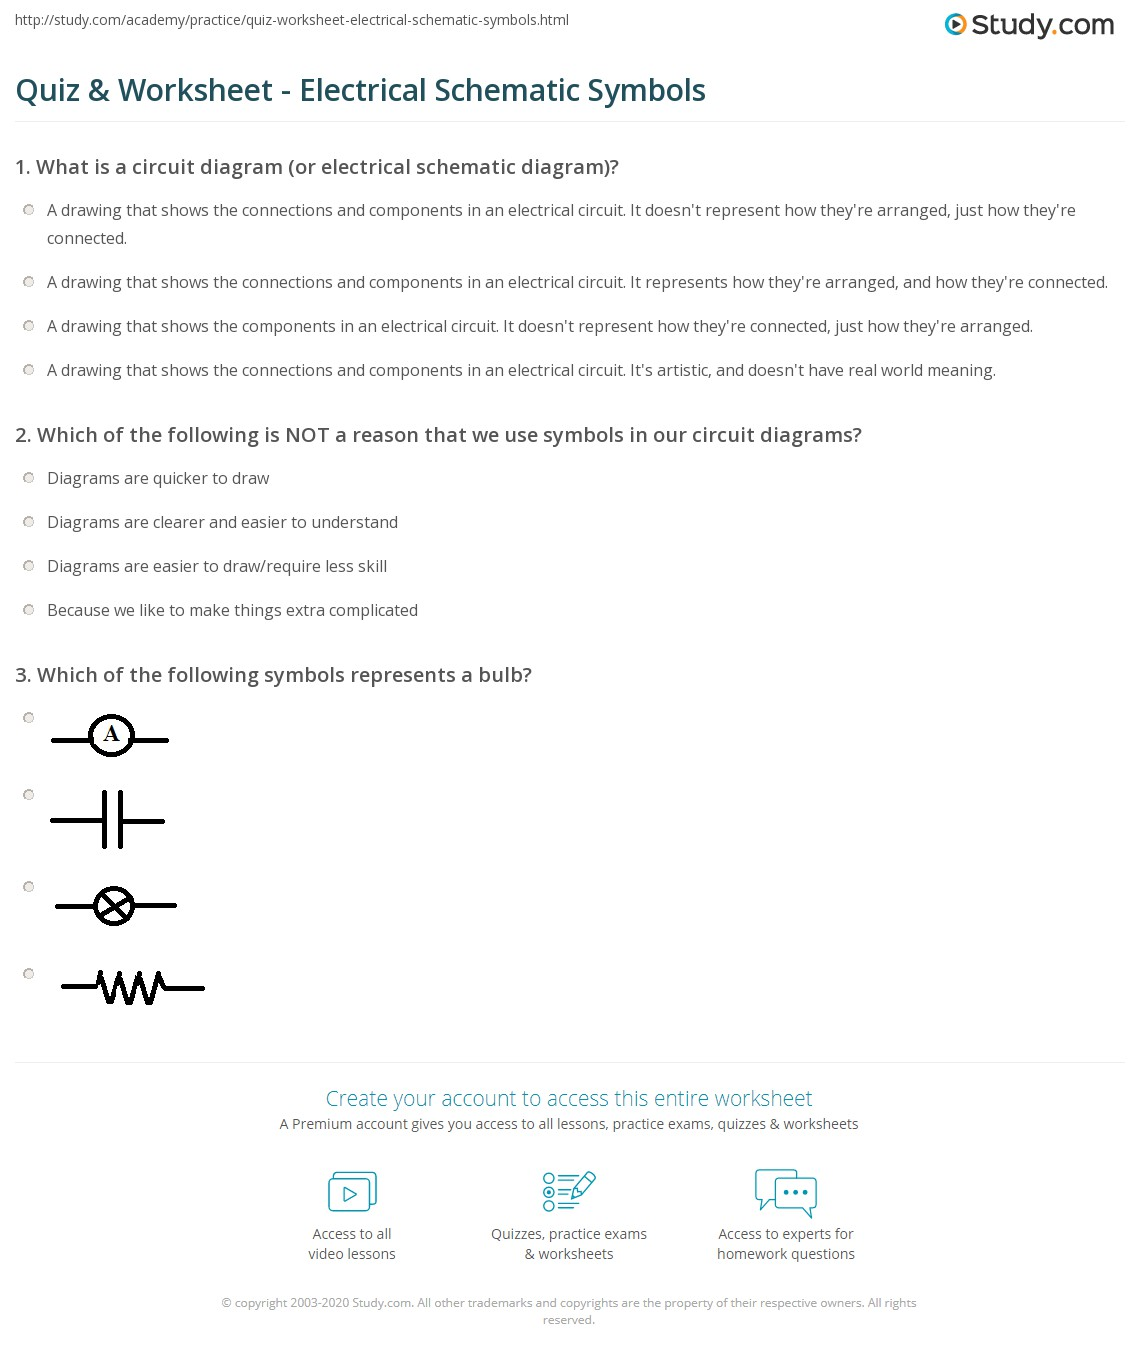 Quiz Worksheet Electrical Schematic Symbols Study Com